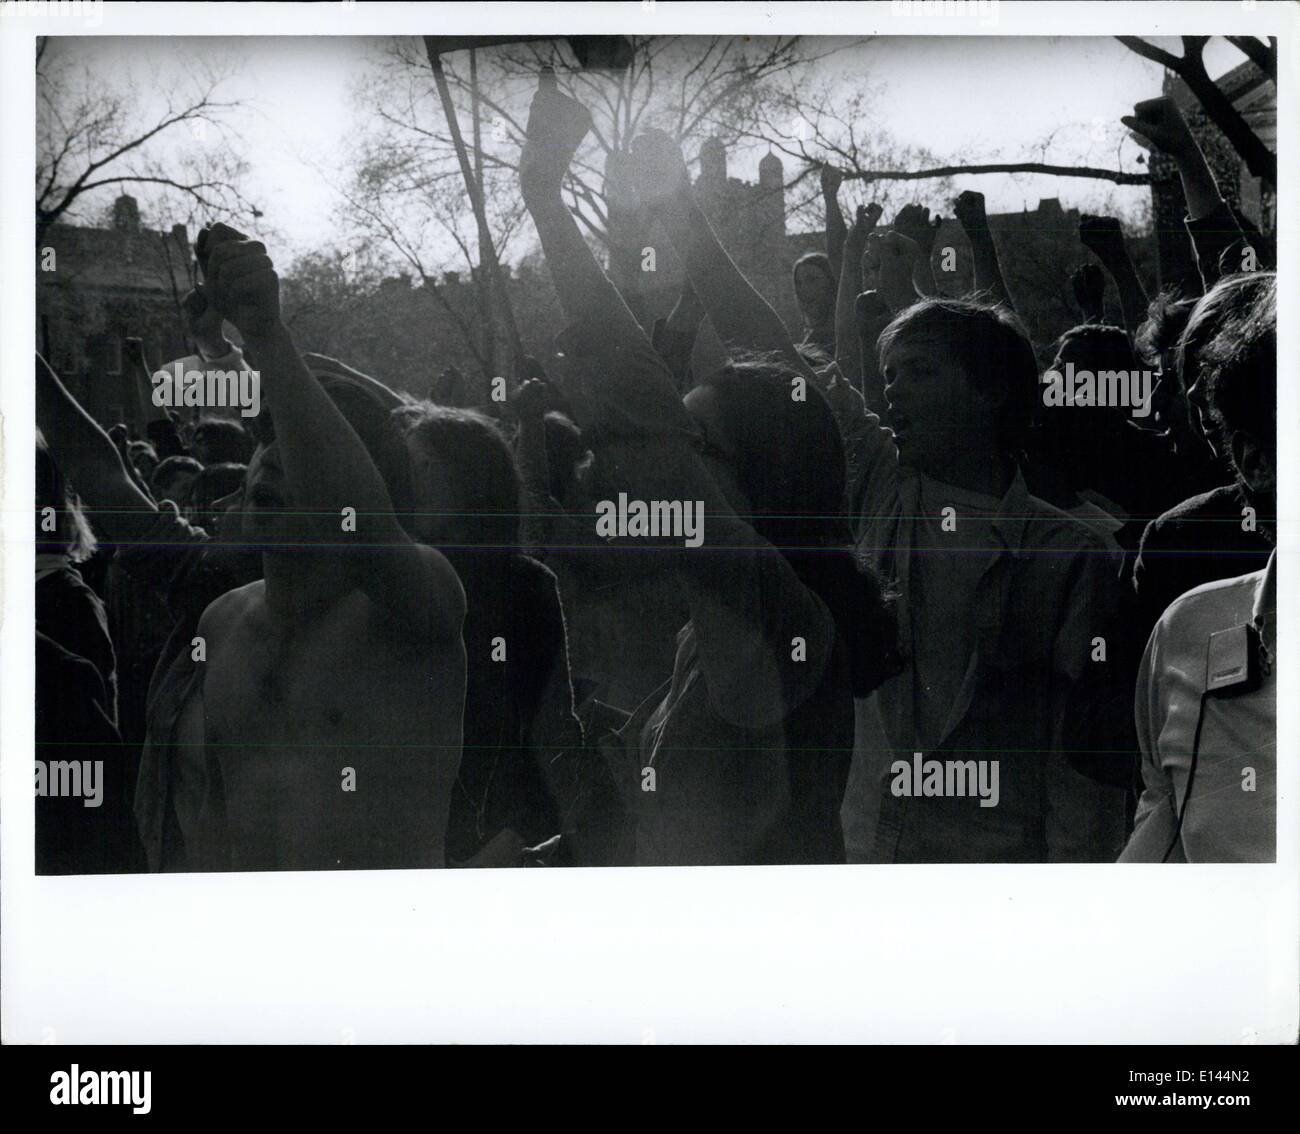 Apr. 04, 2012 - Demonstrators for the Liberator of the Panthers and against the Indonesia war at the New Haven Green - Stock Image